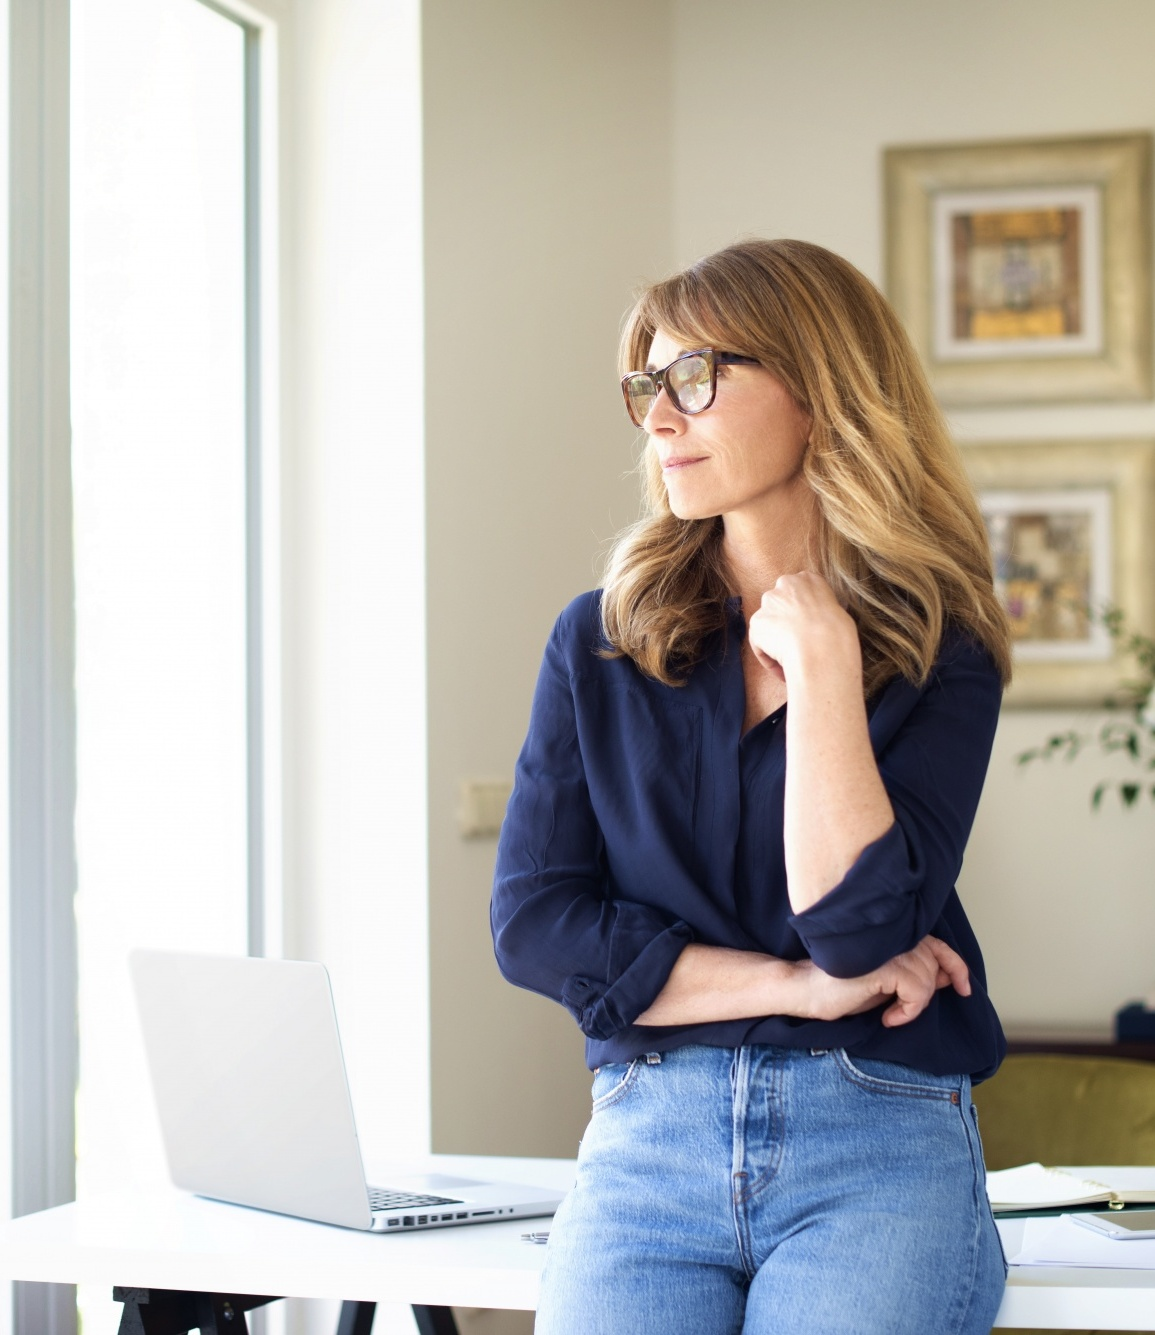 Starting a self care routine, Portrait shot of thinking mature woman standing at desk at home while looking out the window.